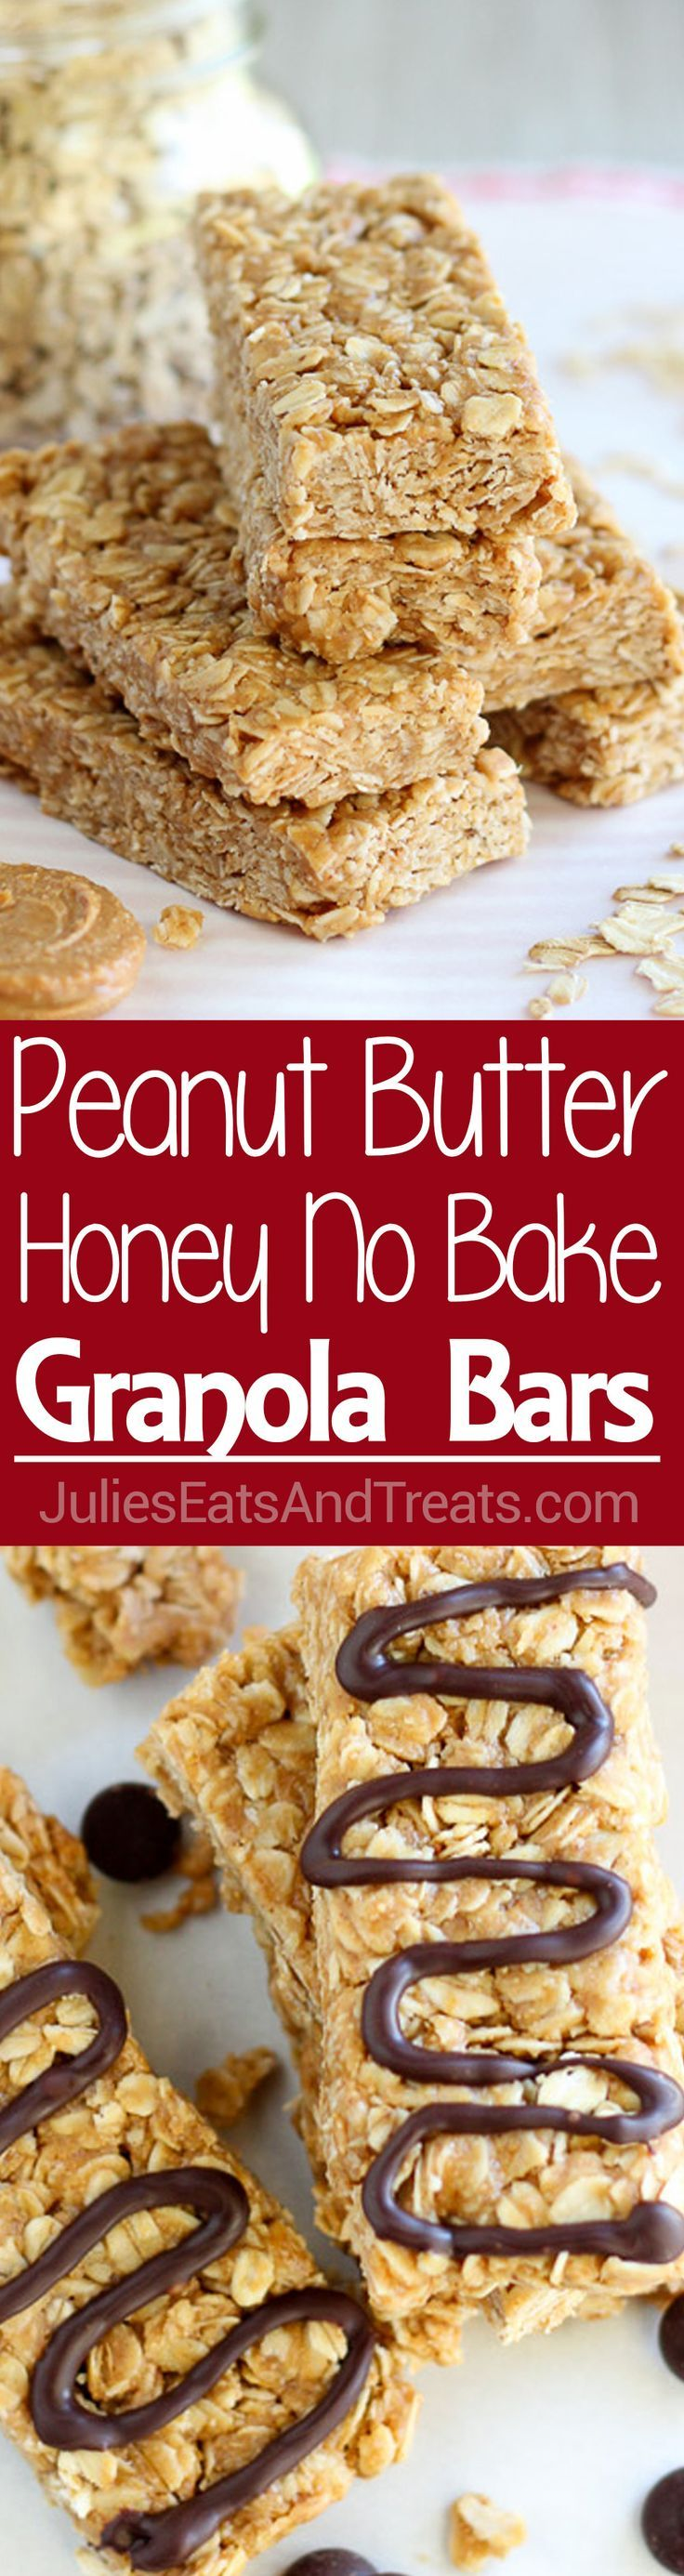 Peanut Butter Honey No Bake Granola Bars ~ Easy, No Bake Granola Bars are Flavored with Peanut Butter and Sweetened with Honey! Perfect After School Snack for The Kids or Healthy Snack For You!